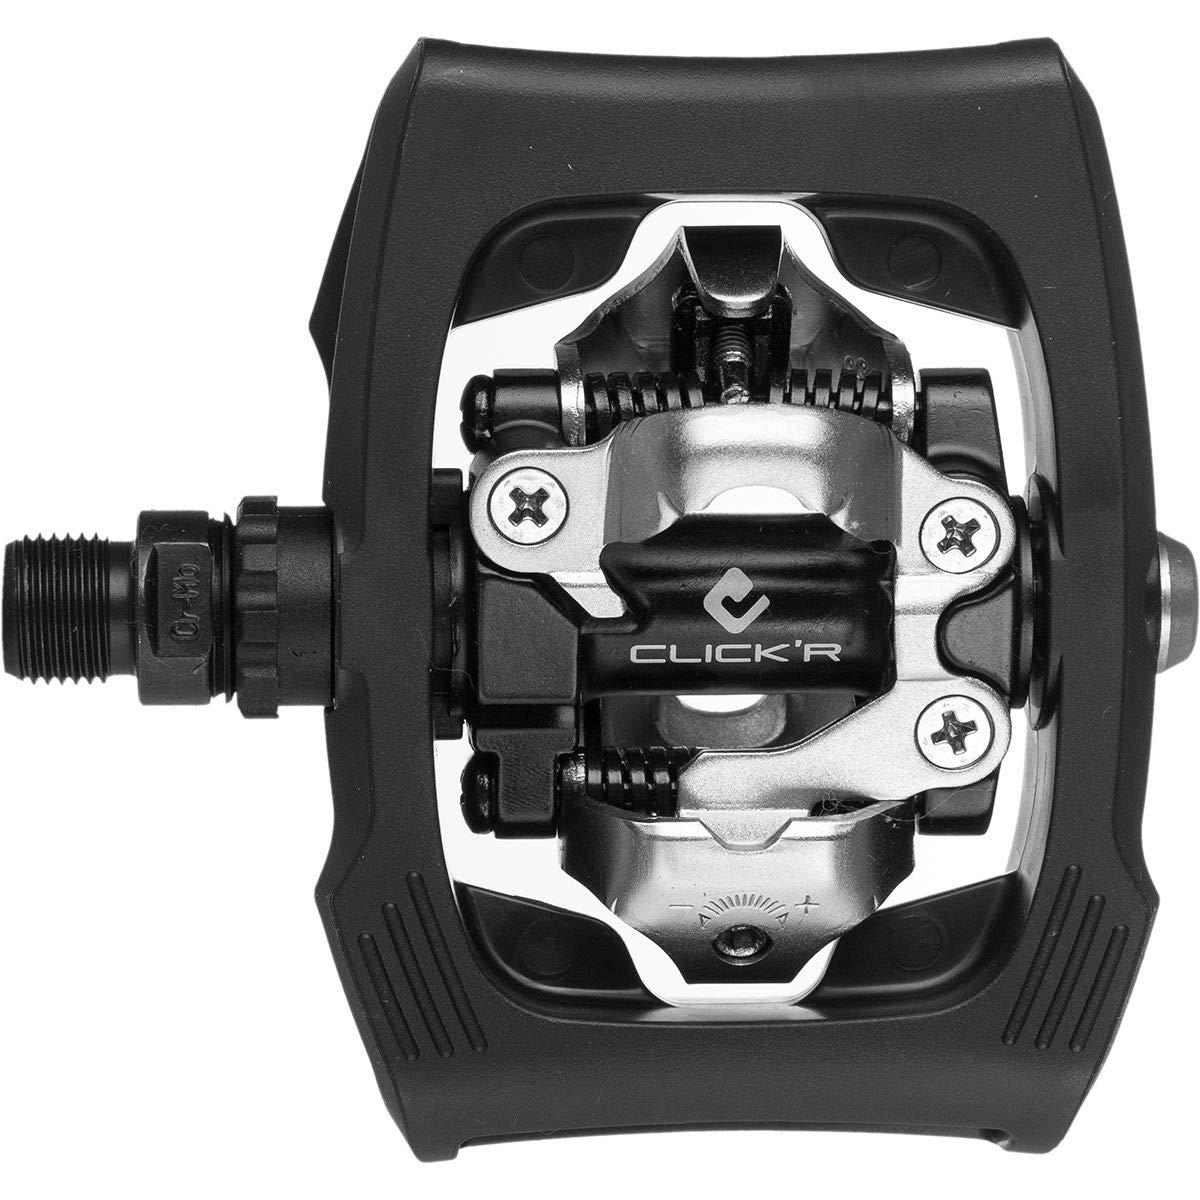 Reflectors Bicycle Bike Pedals Black With Cleats Shimano PD T400 Click/'R SPD